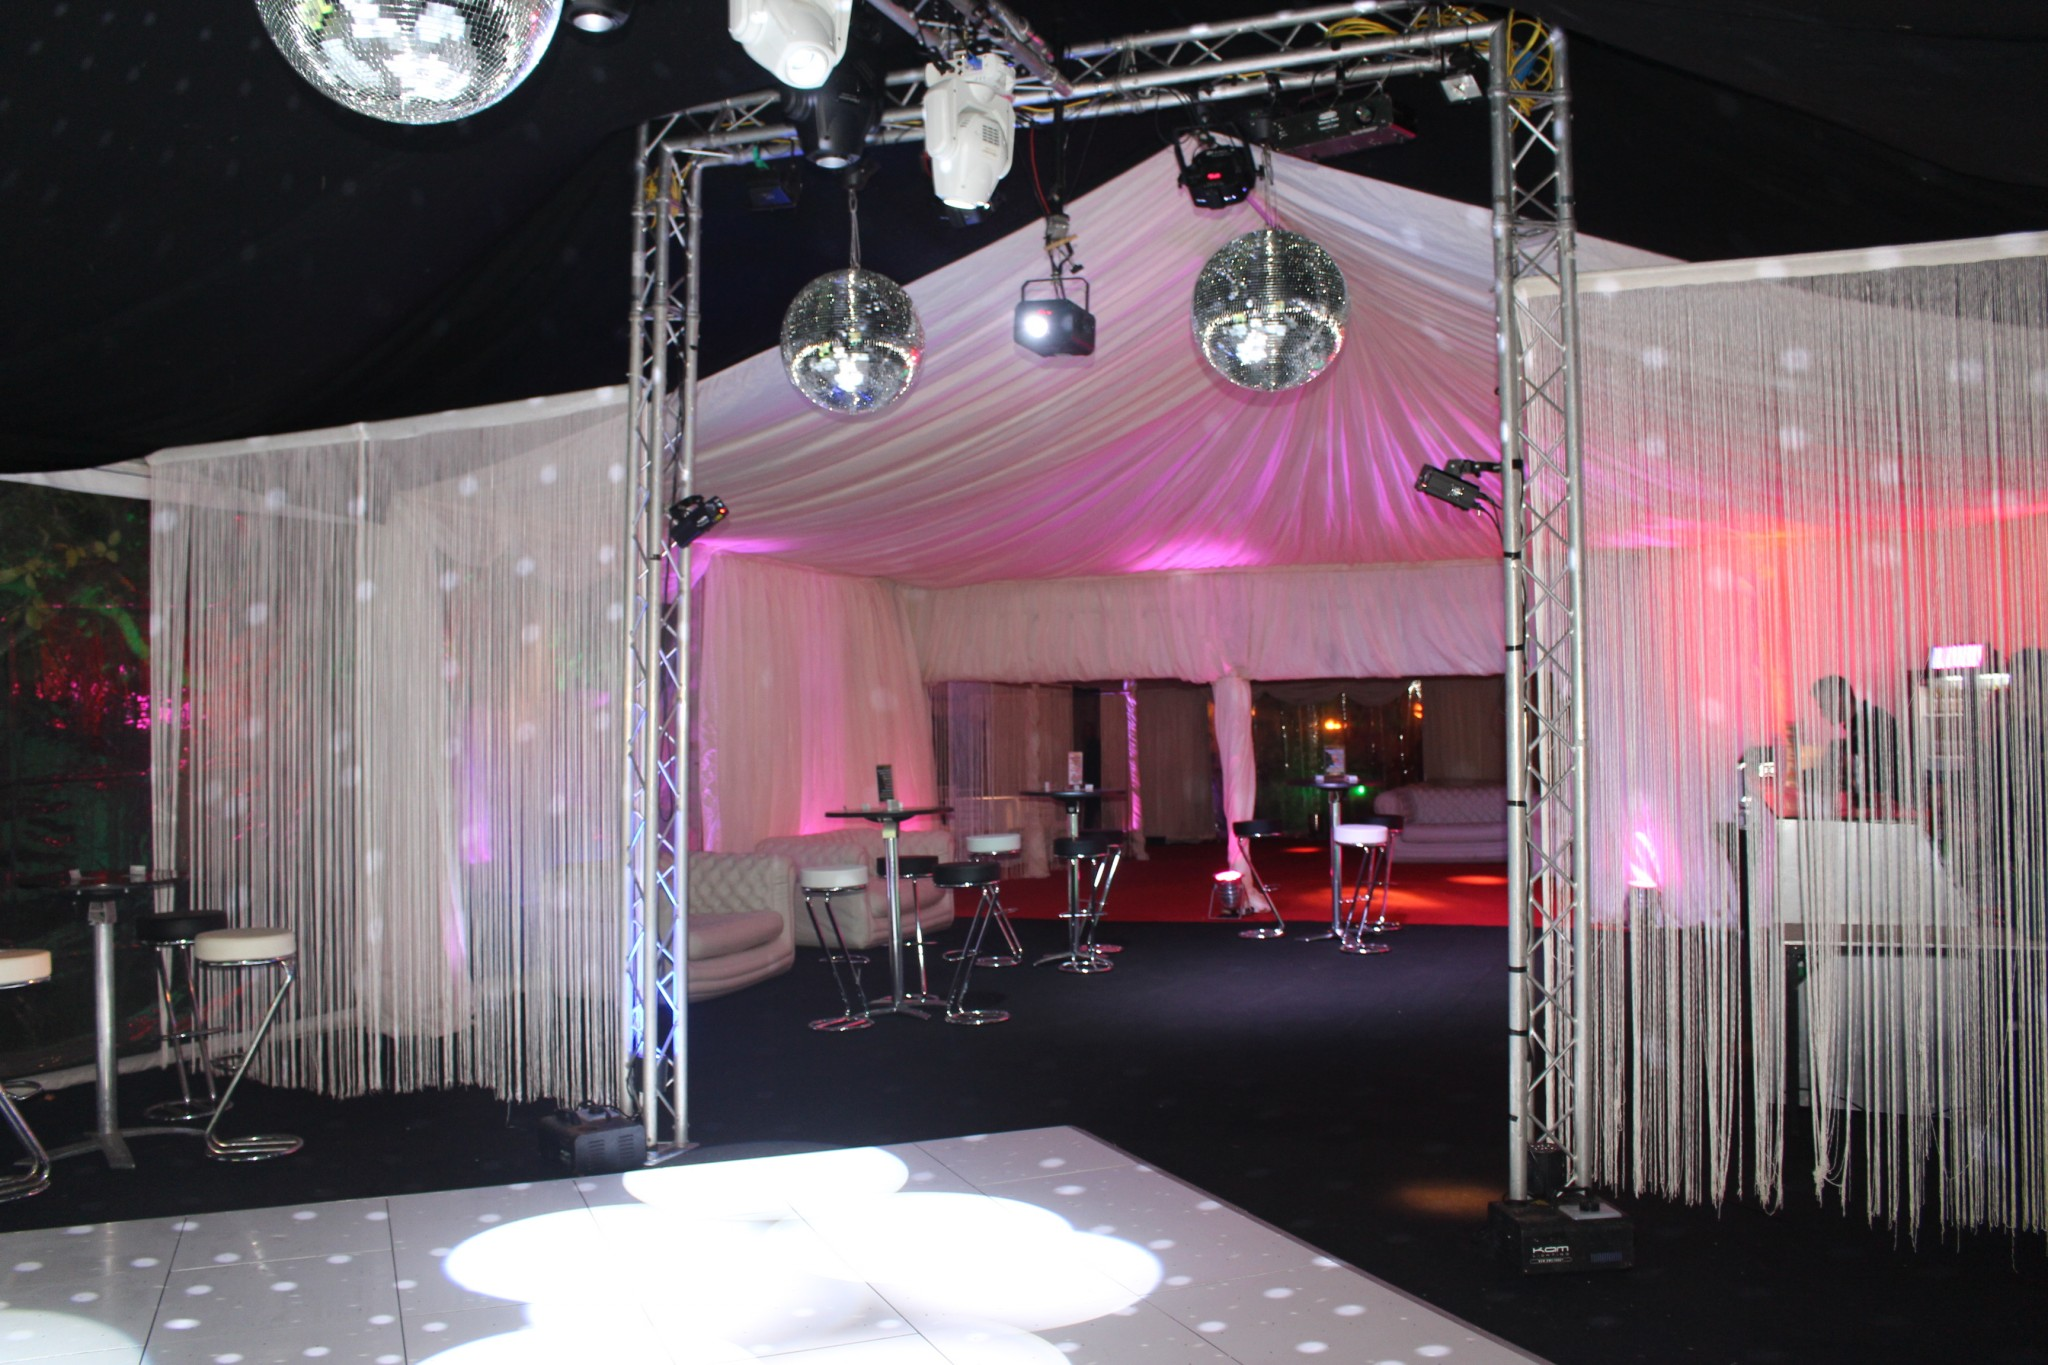 decoration for party and event with dancefloor to hire